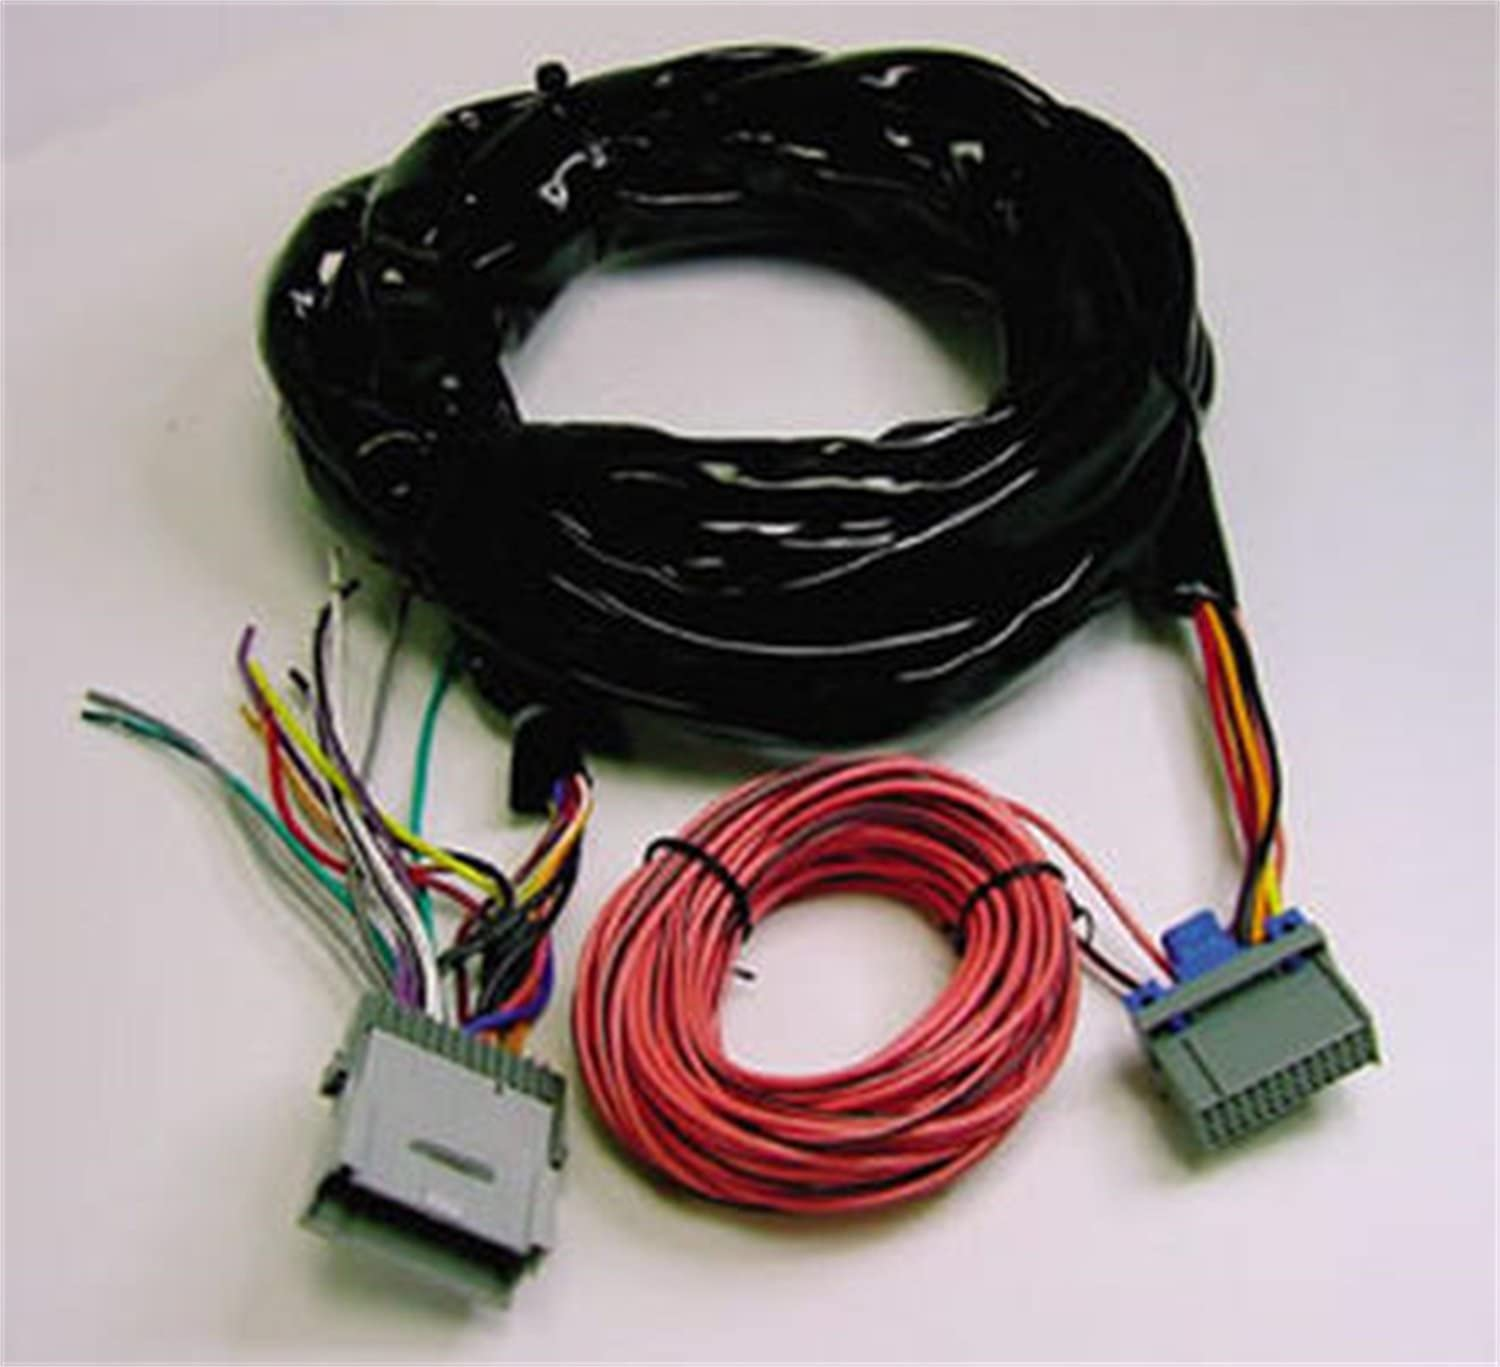 scosche gm2000 gm radio car stereo wire wiring harness - termination wiring  diagrams scotts-s1642.au-delice-limousin.fr  bege wiring diagram full edition